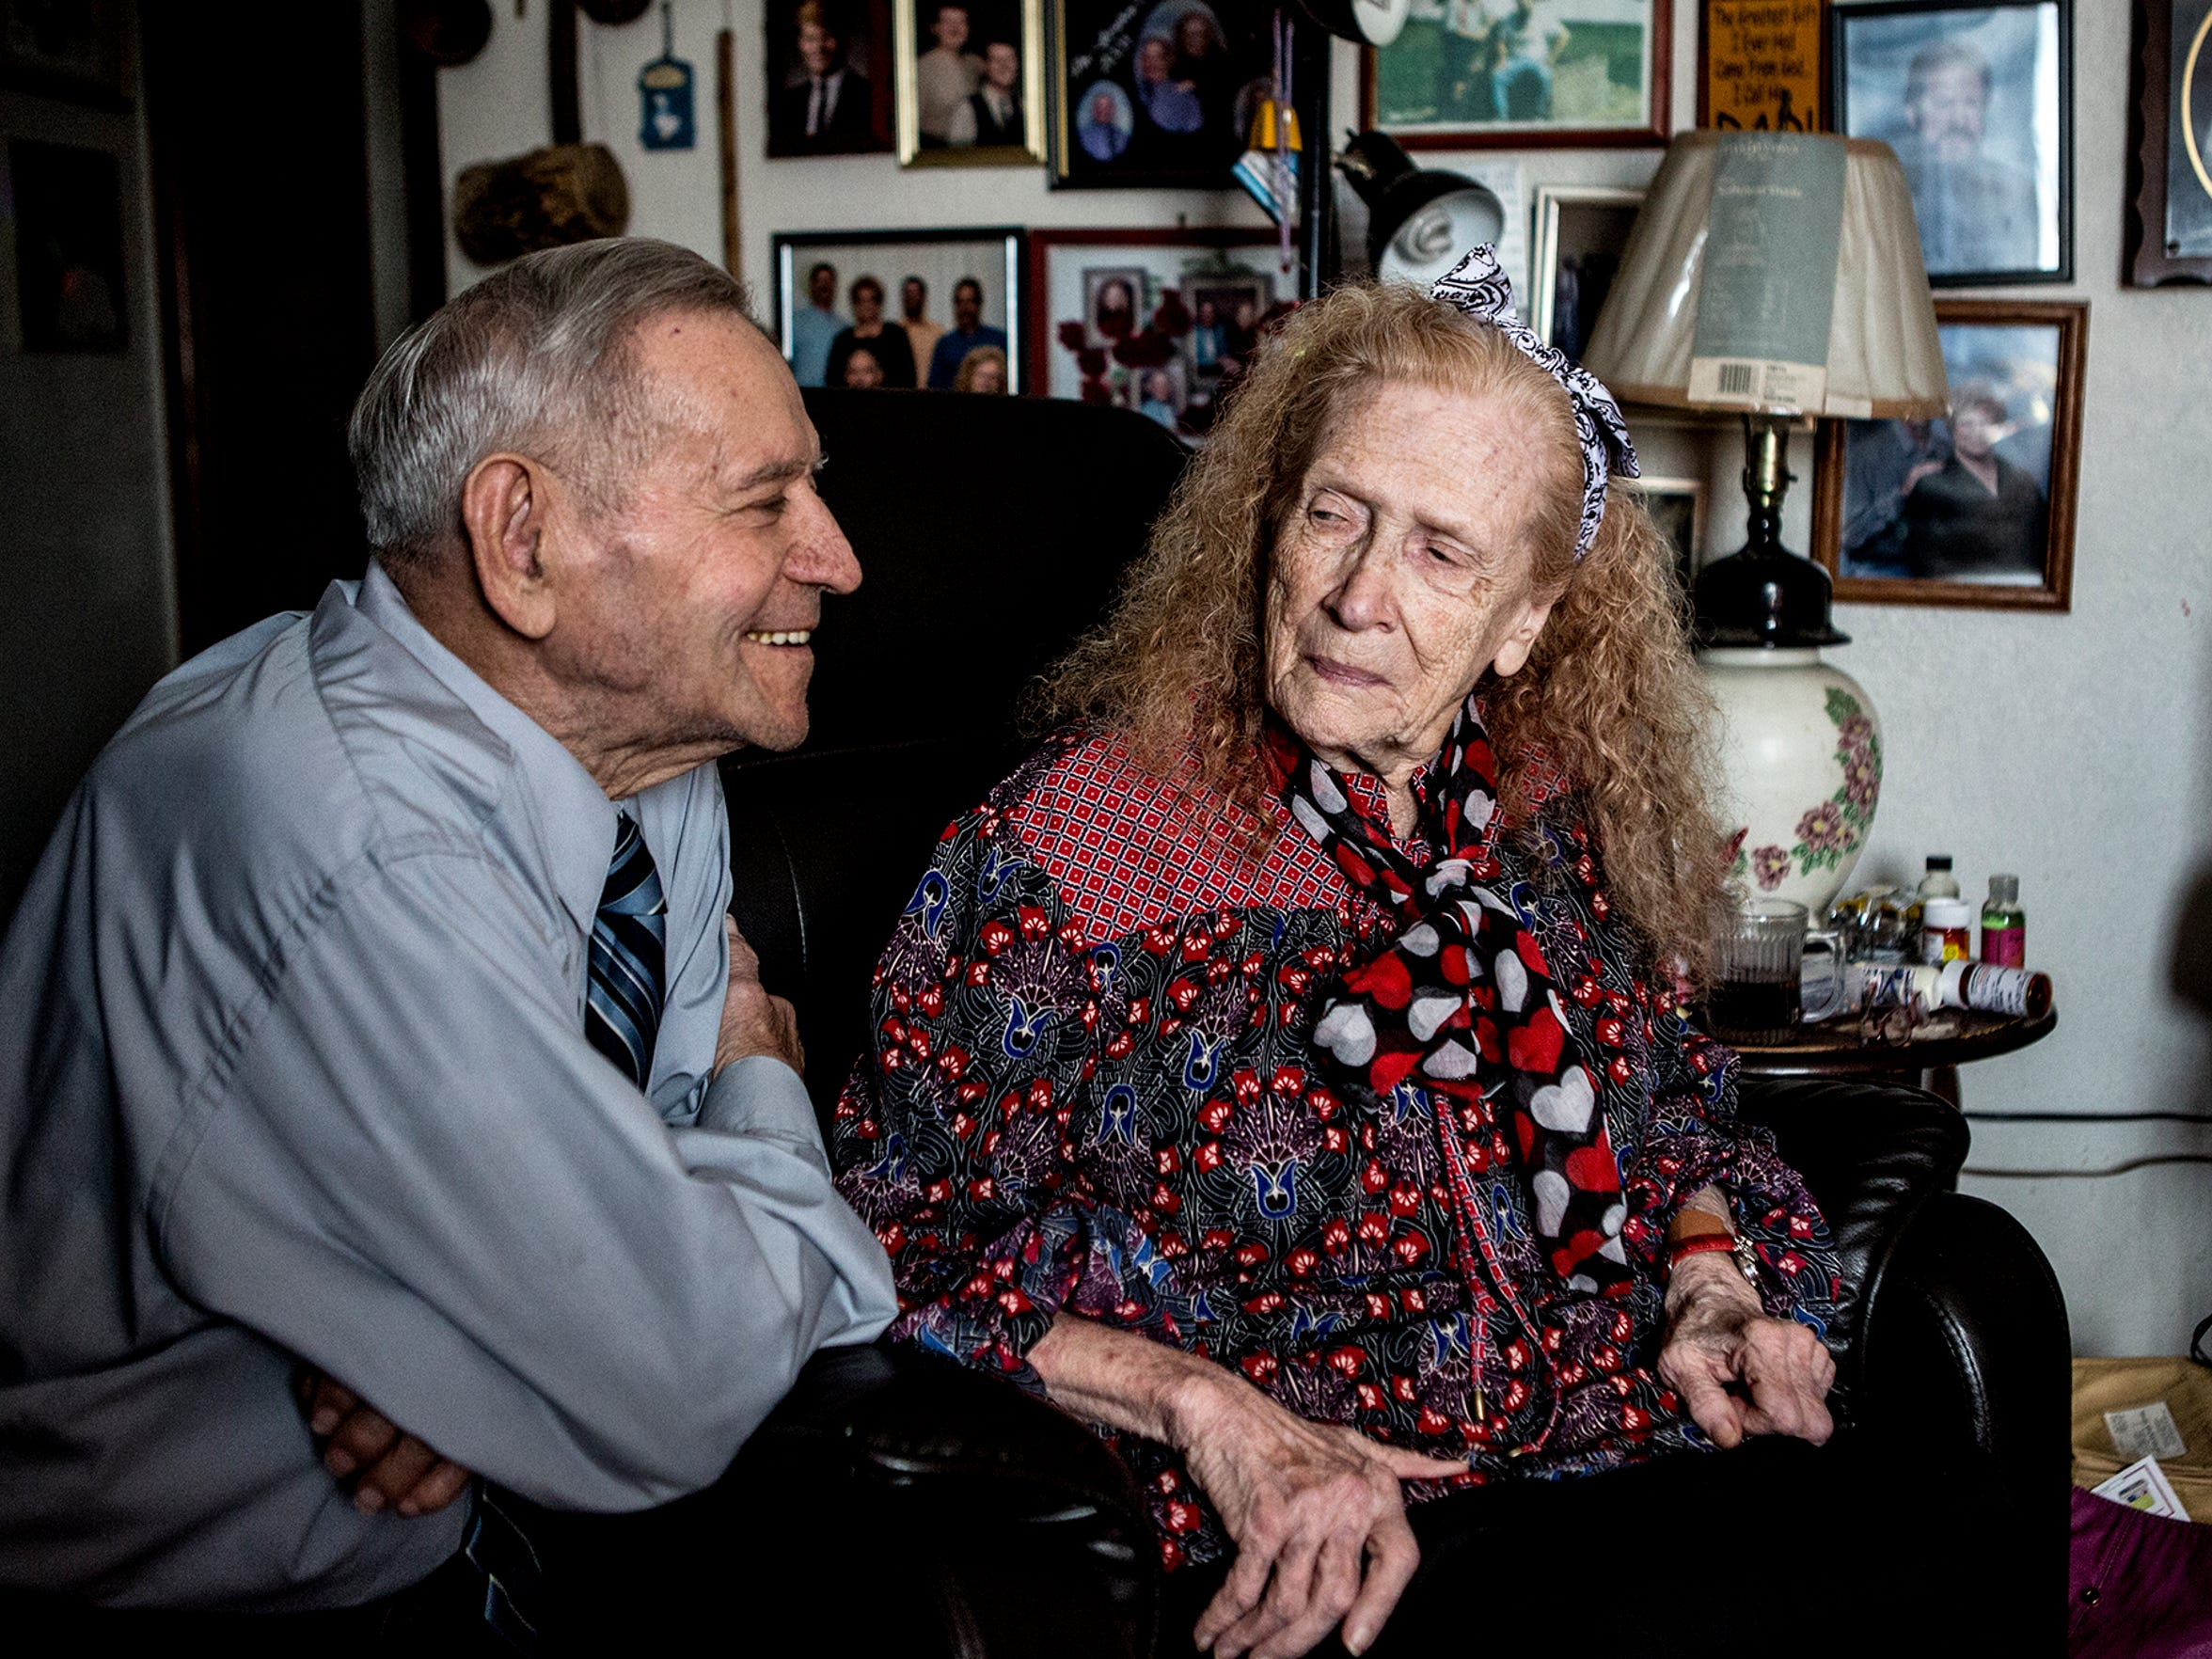 High school sweethearts, George and Alice Gordon are still very much in love after 70 years of marriage, six children and 70 grandchildren.